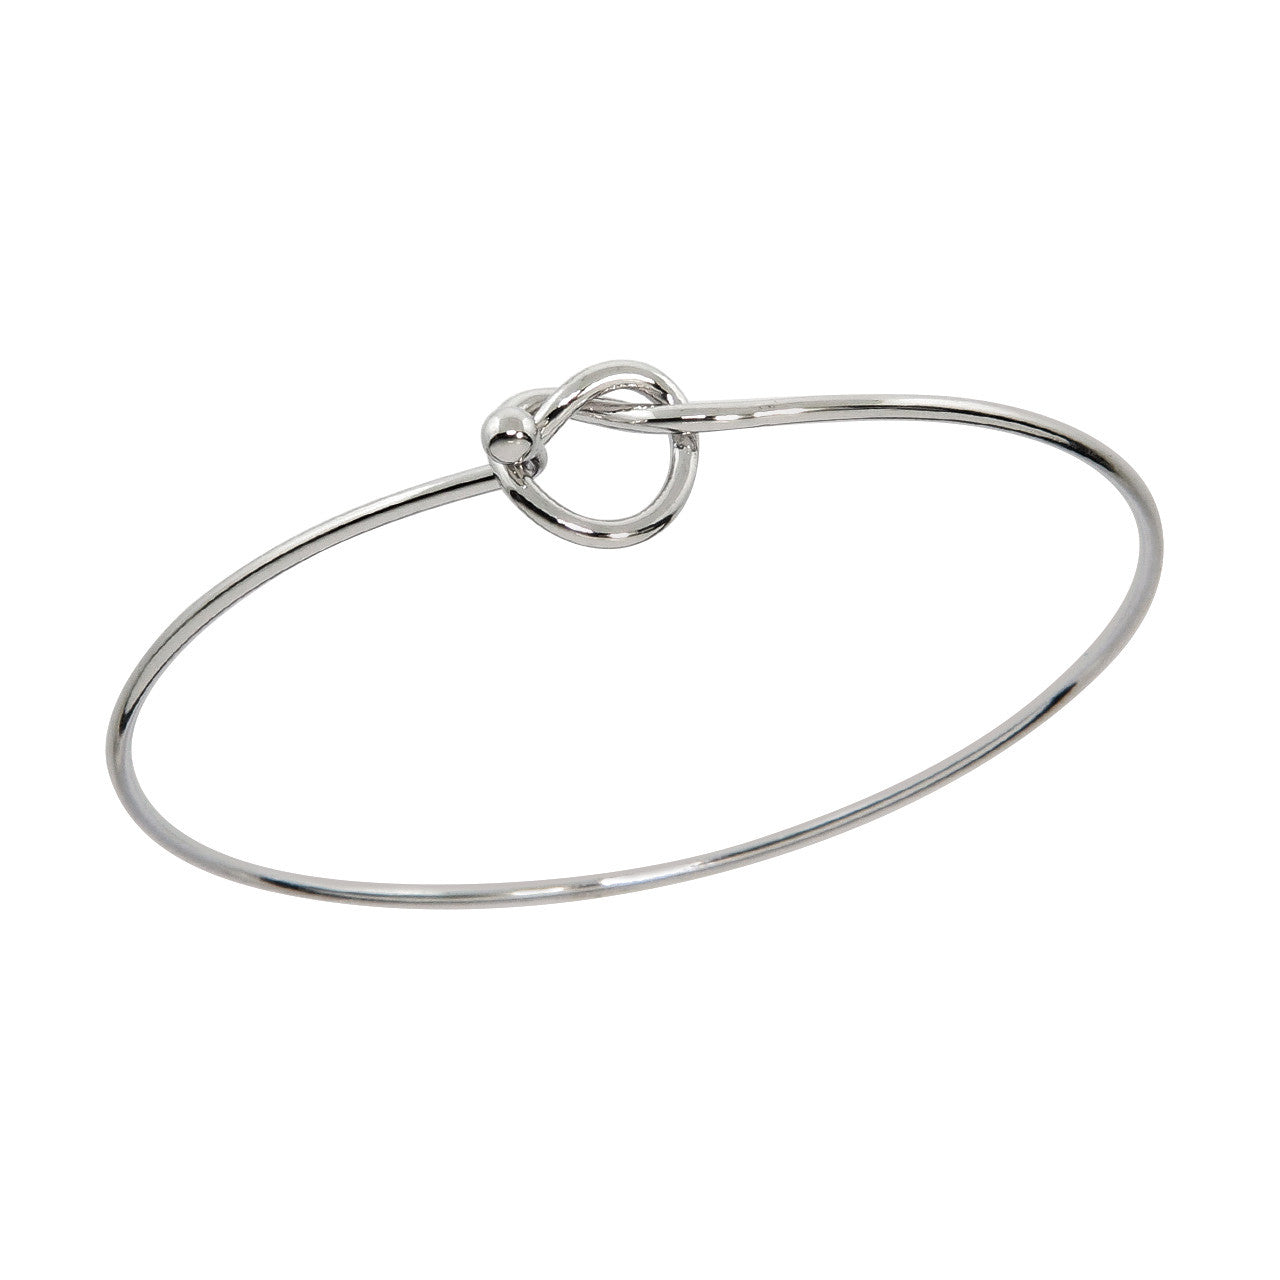 Hinged open Love Knot Bangle